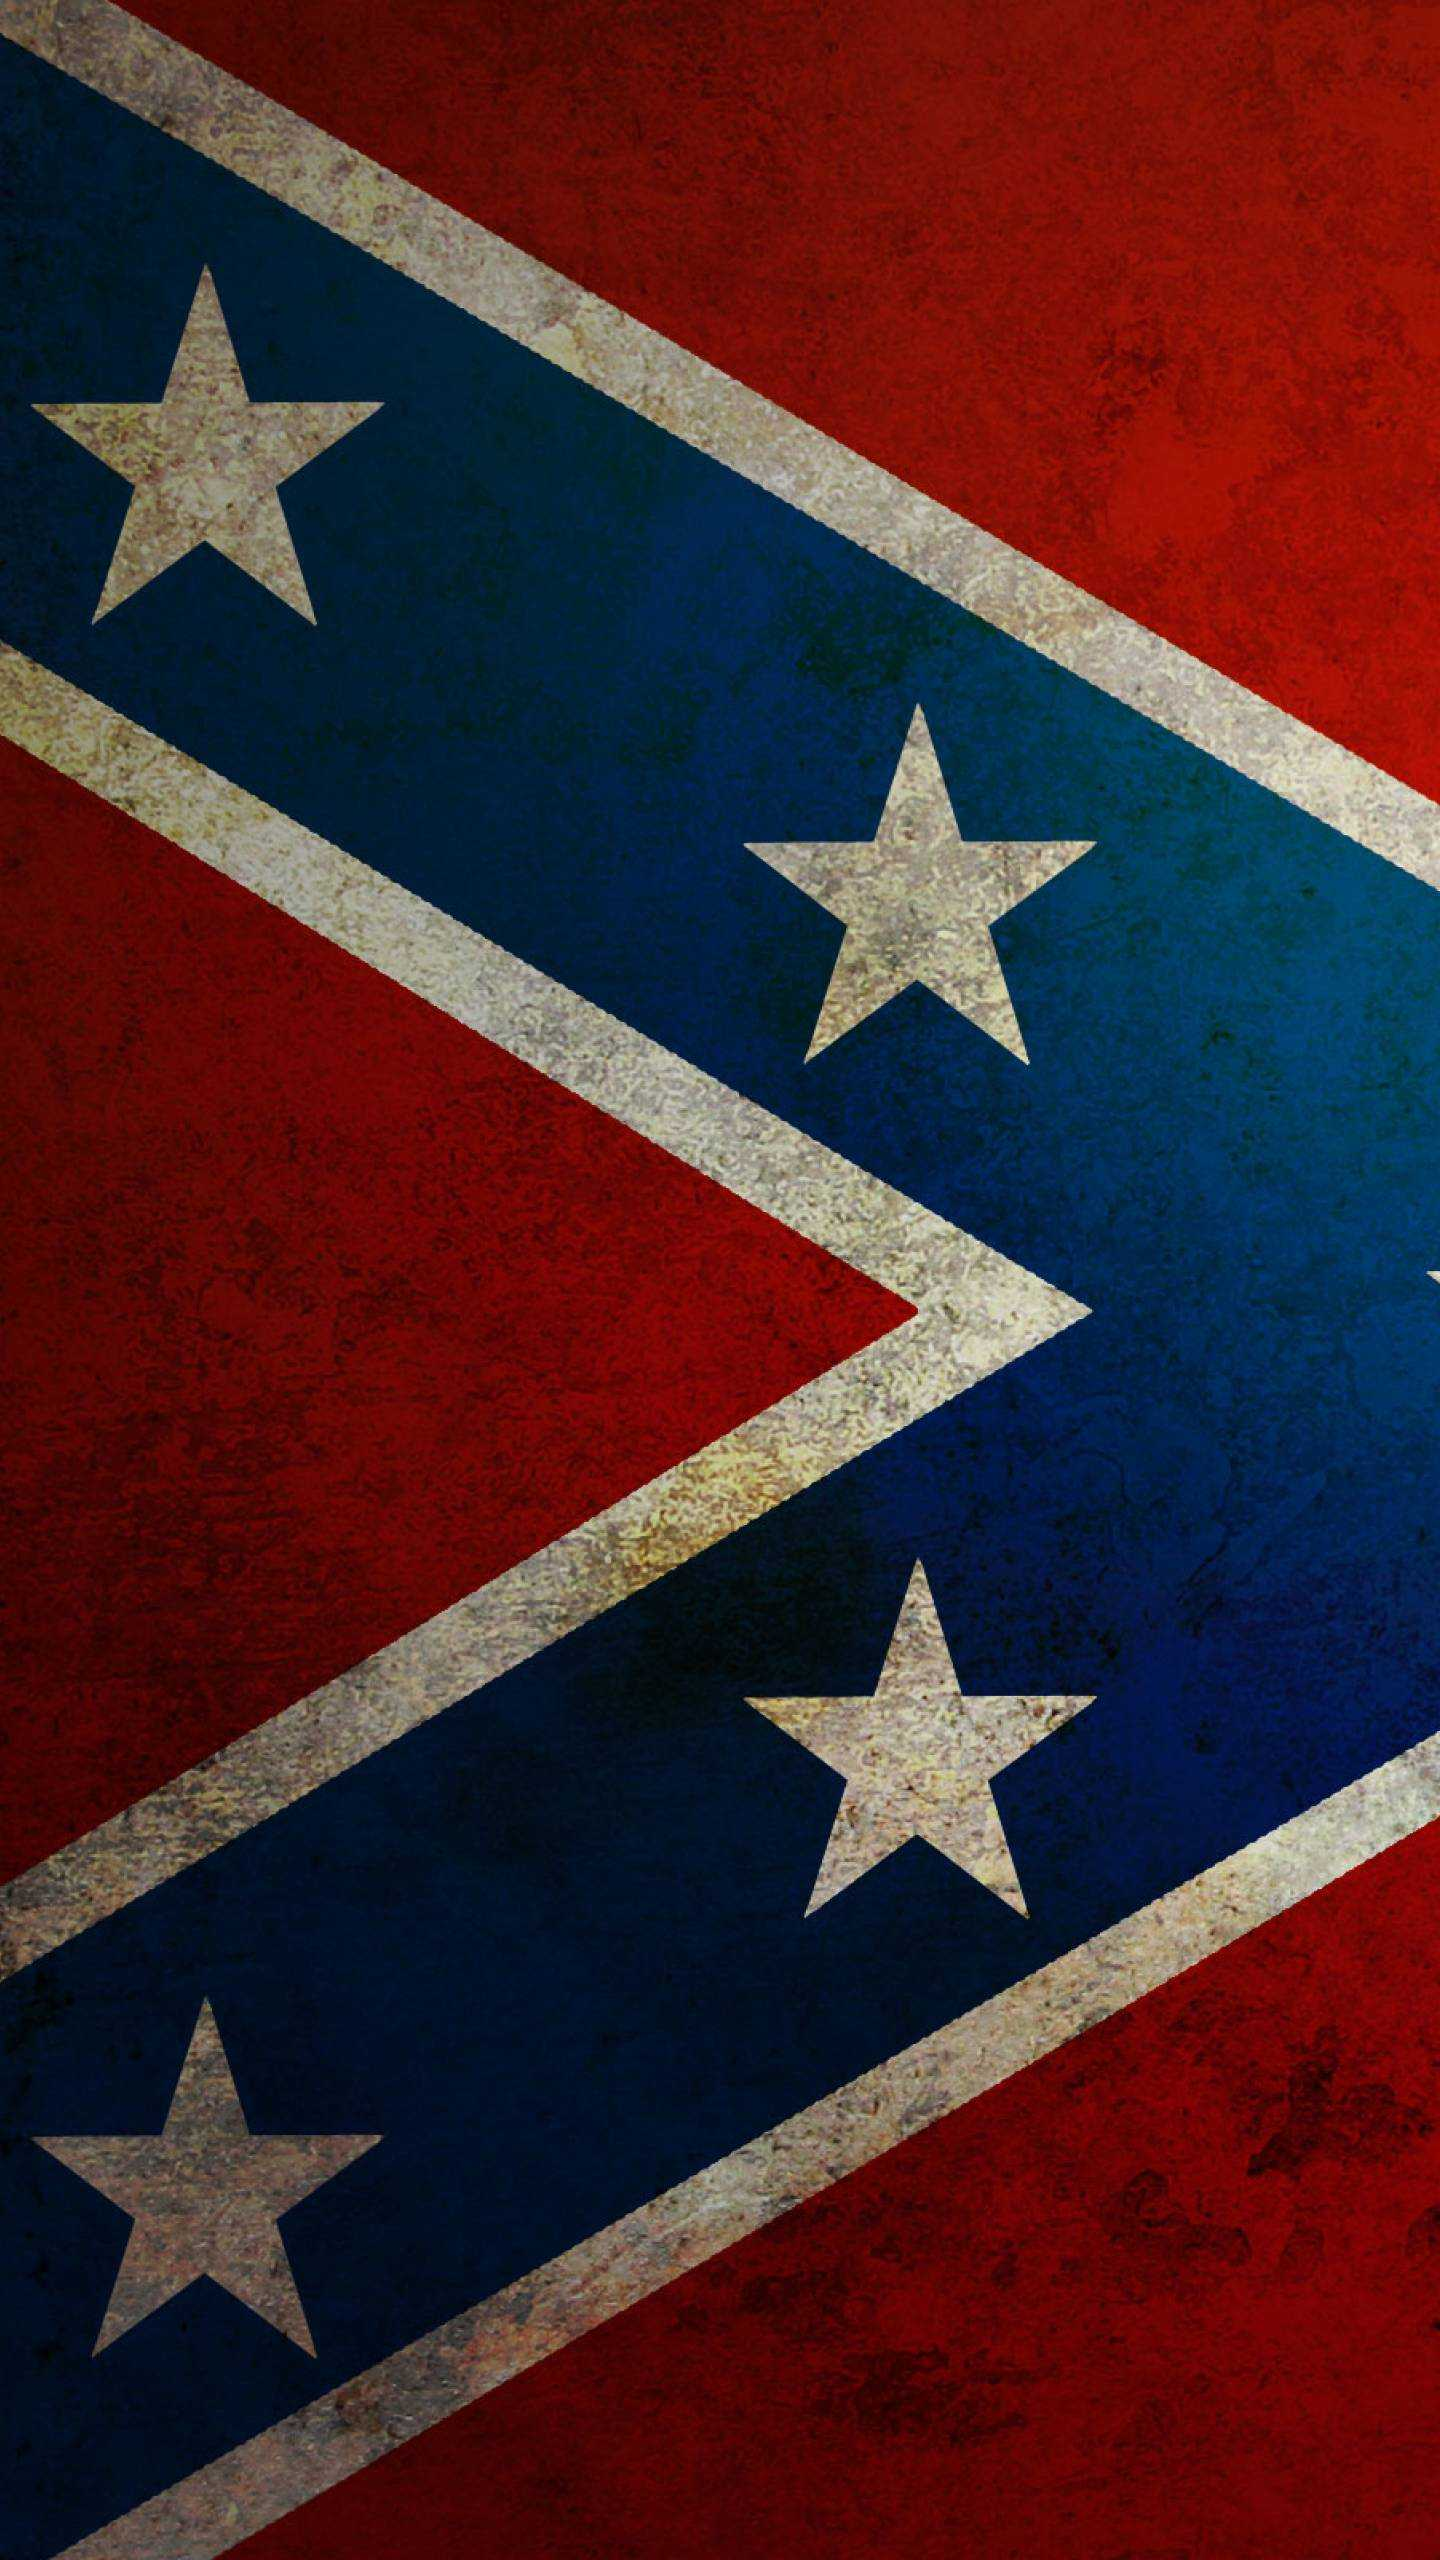 Rebel Flag Background For Phone Posted By Sarah Sellers